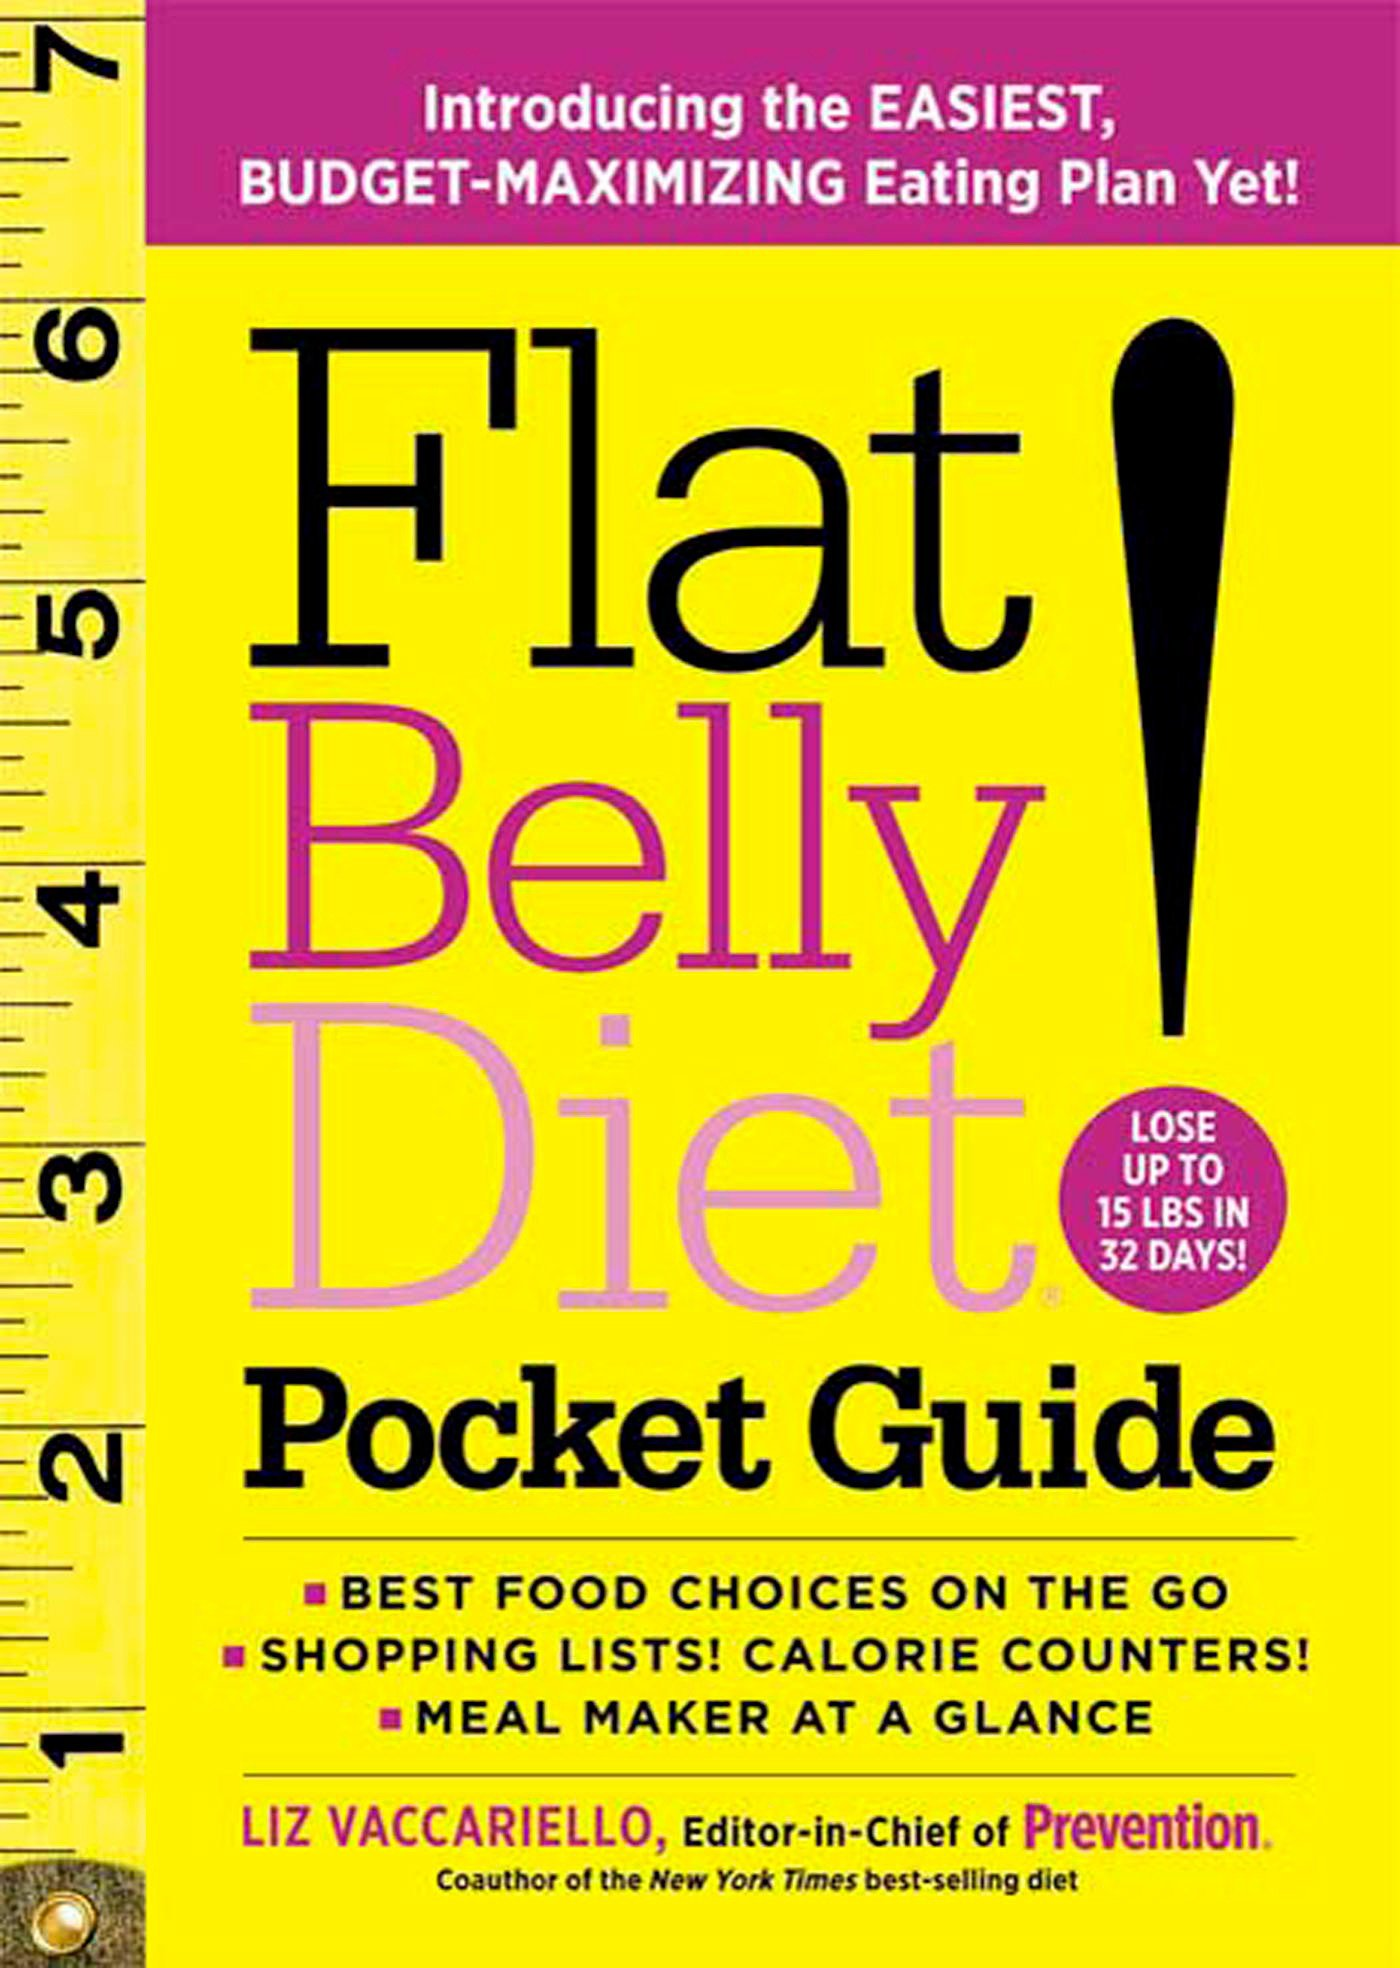 Flat Belly Diet! Pocket Guide: Introducing the EASIEST, BUDGET-MAXIMIZING  Eating Plan Yet: Liz Vaccariello: 9781605296500: Amazon.com: Books